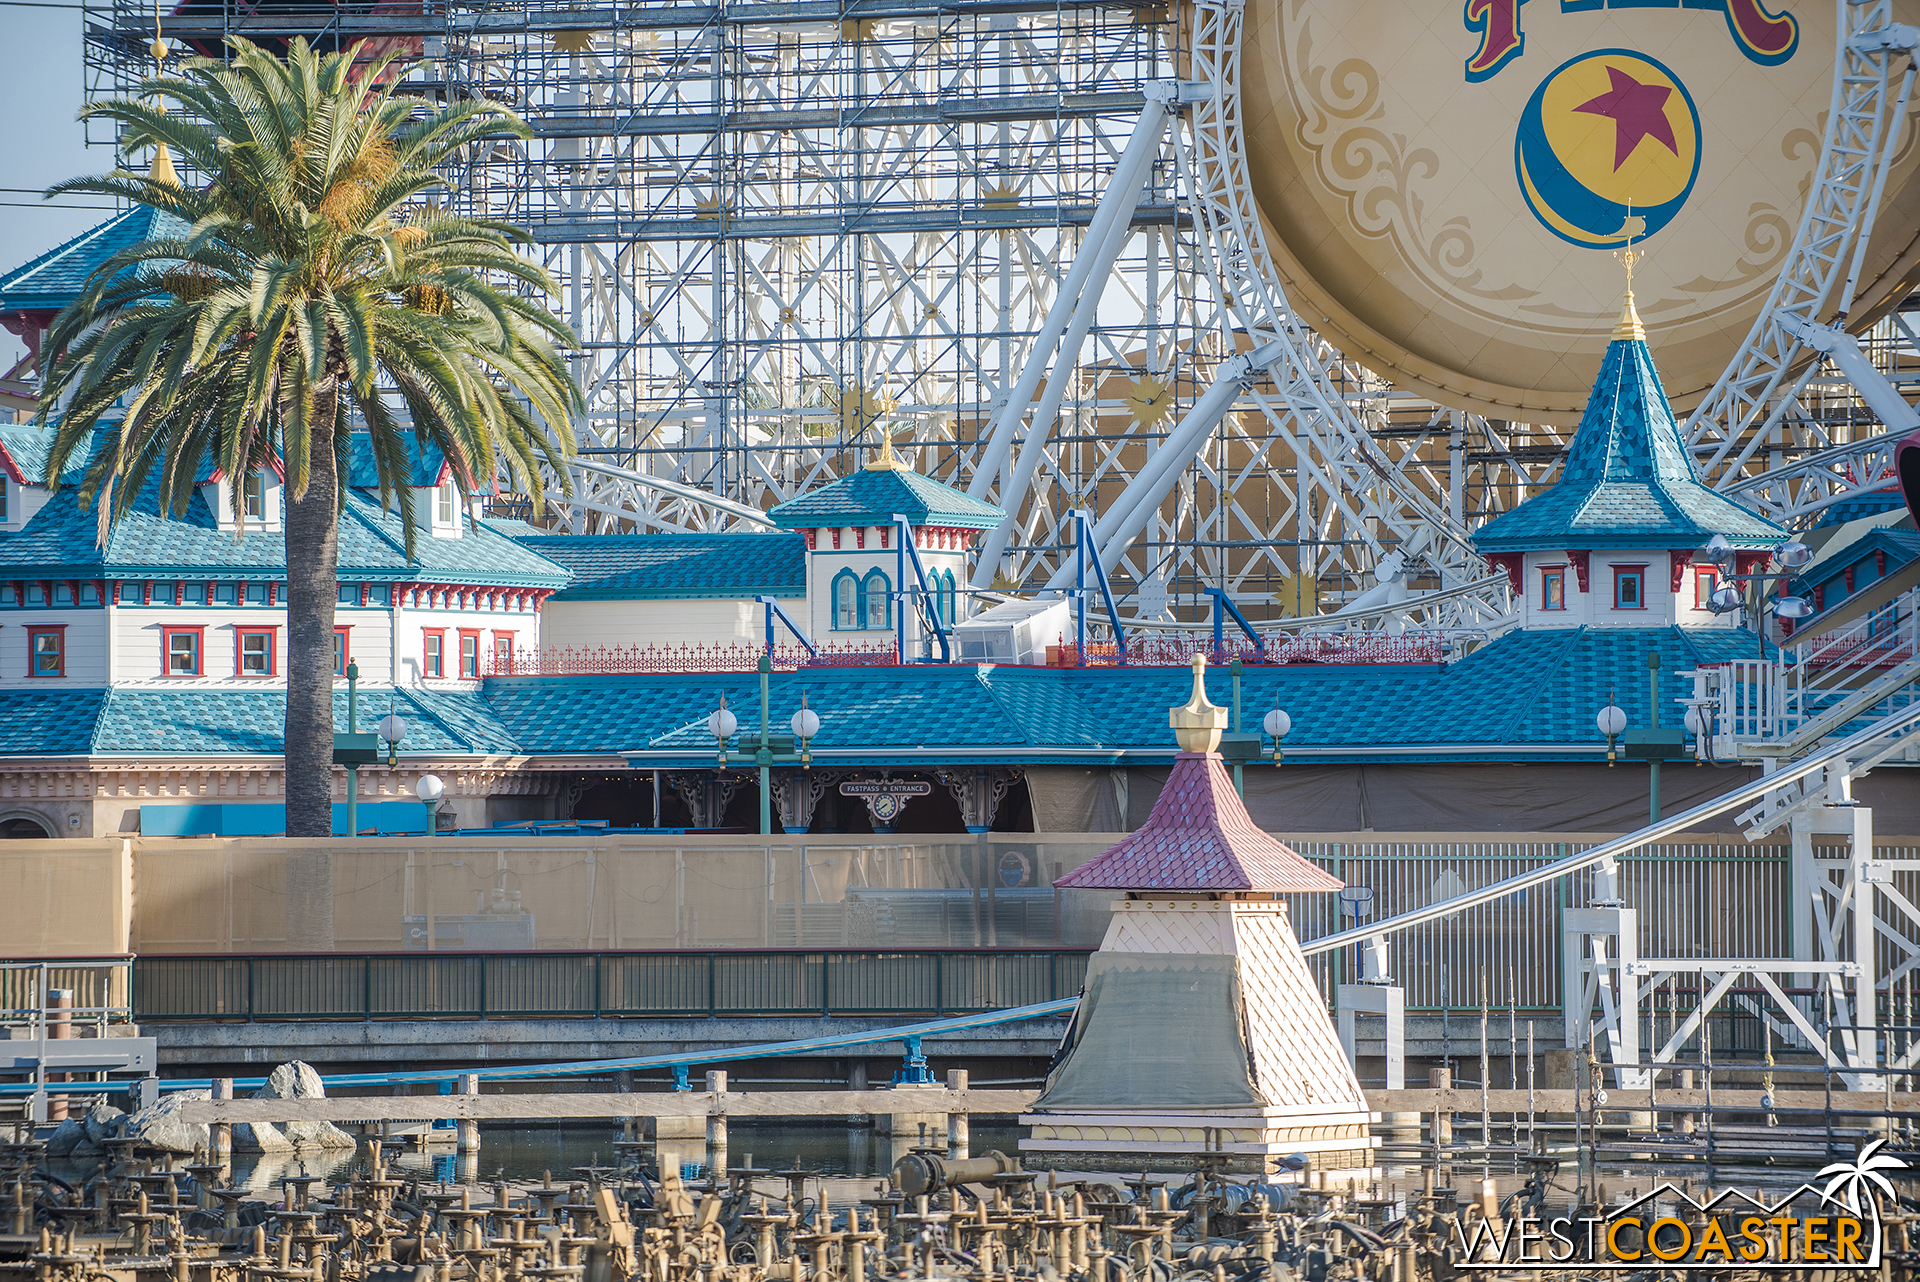 The scaffolding around Toy Story Midway Mania is mostly down now.  I think the building and colors look quite nice here.